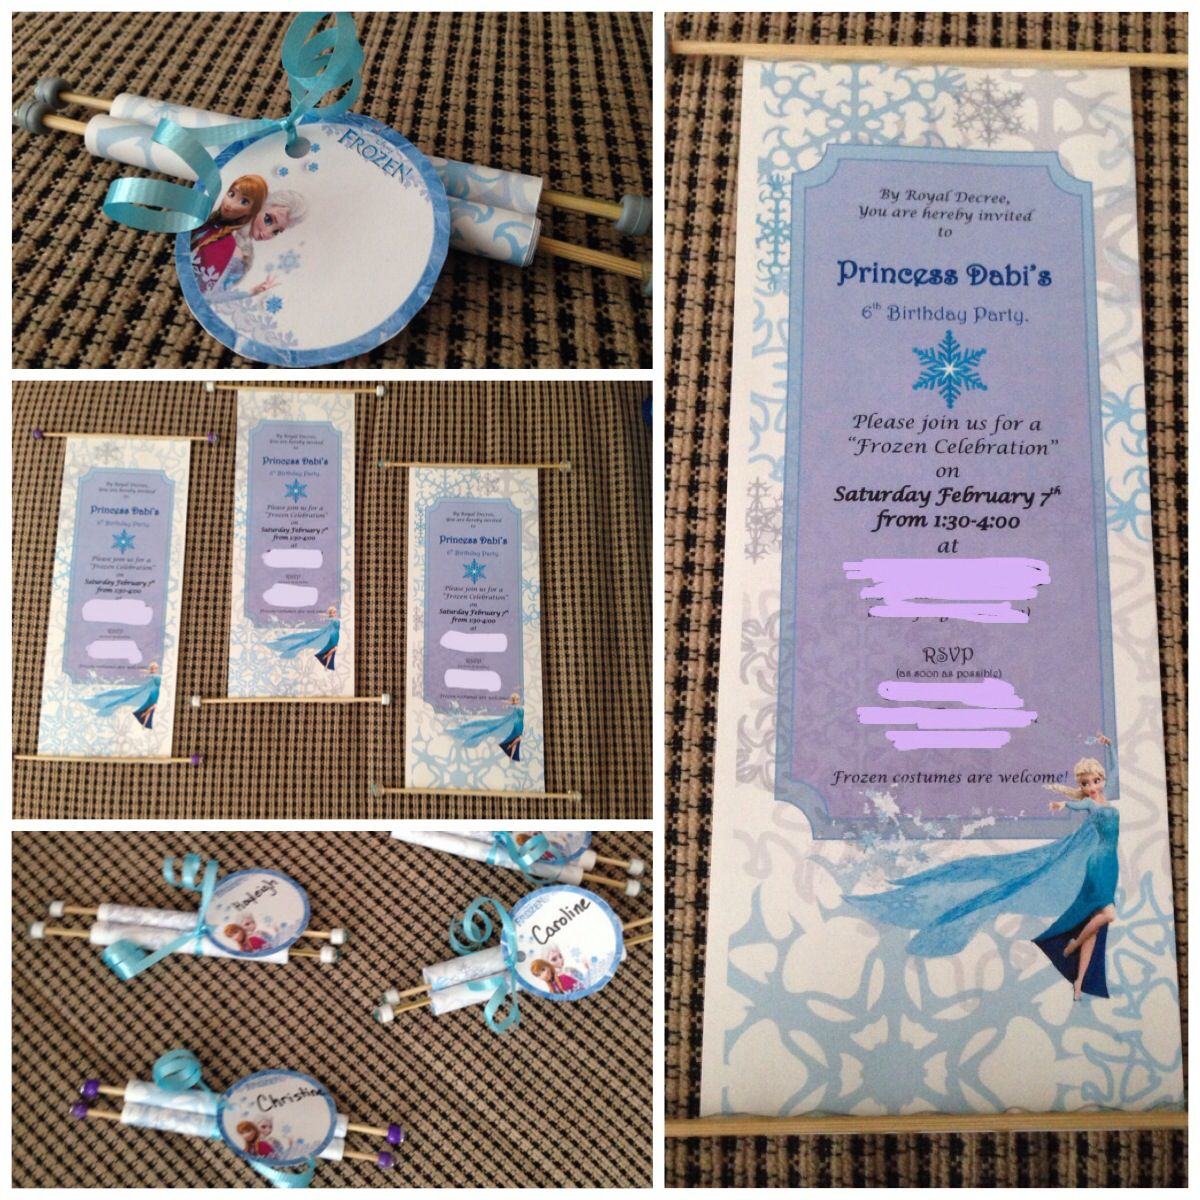 Finished the home made scroll invitations. Who knew pony beads + skewers + dollar store gem sticker = scroll!